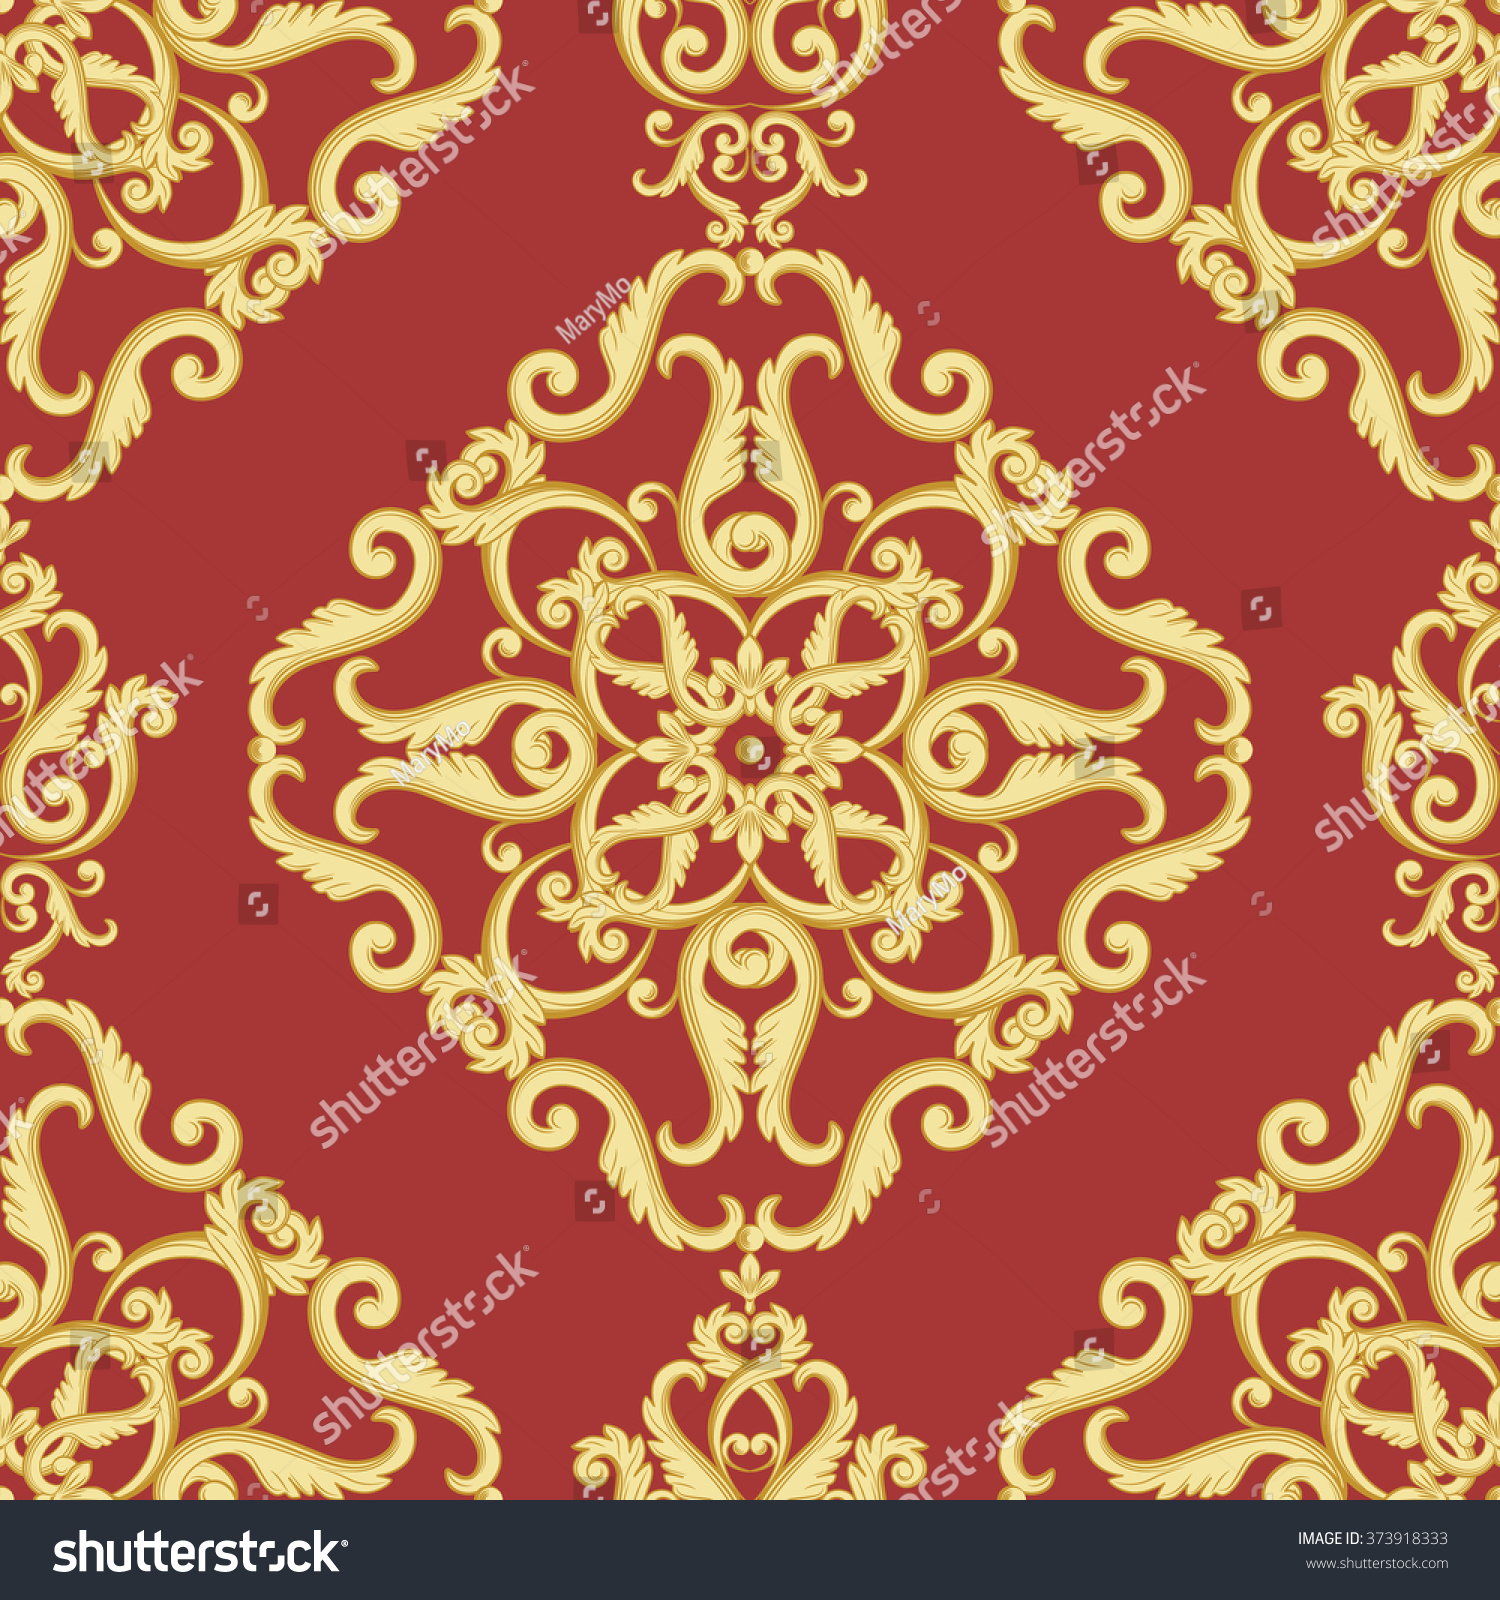 Seamless Damask Pattern Gold Red Texture Stock Vector (Royalty Free ...